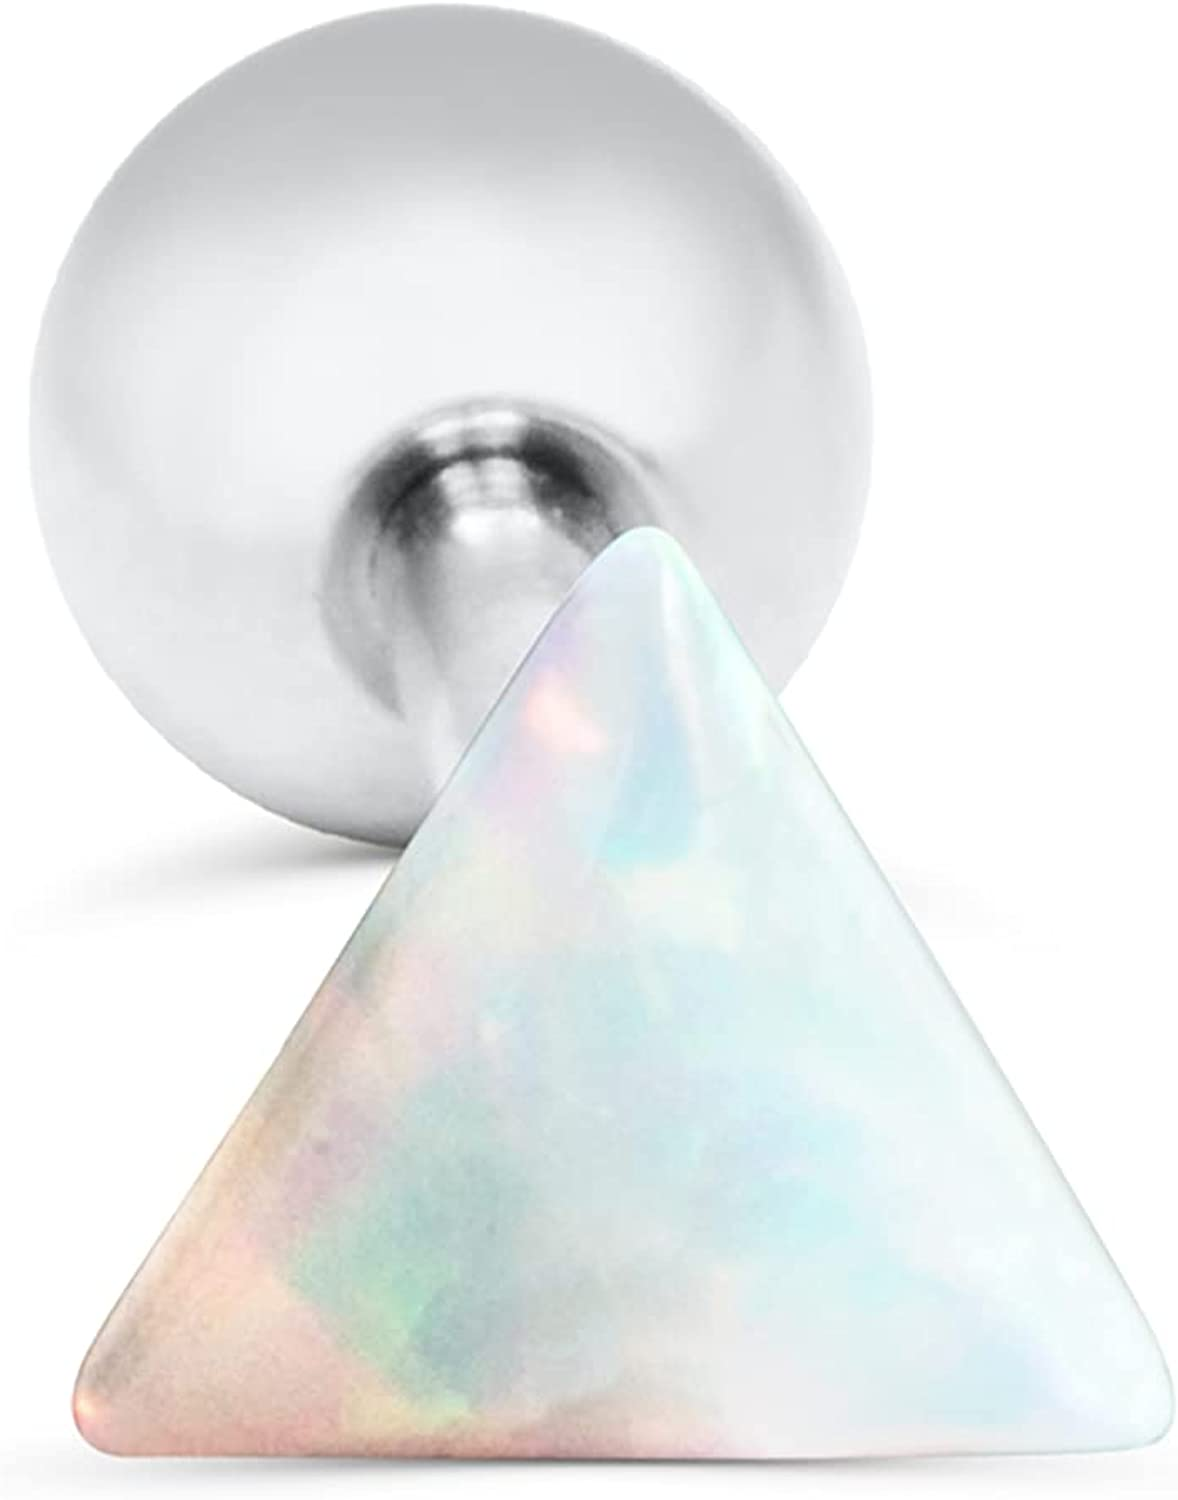 16g Lucky Cartilage Helix Simulated Dainty Opal Ball Ear Stud Earring Barbell Piercing